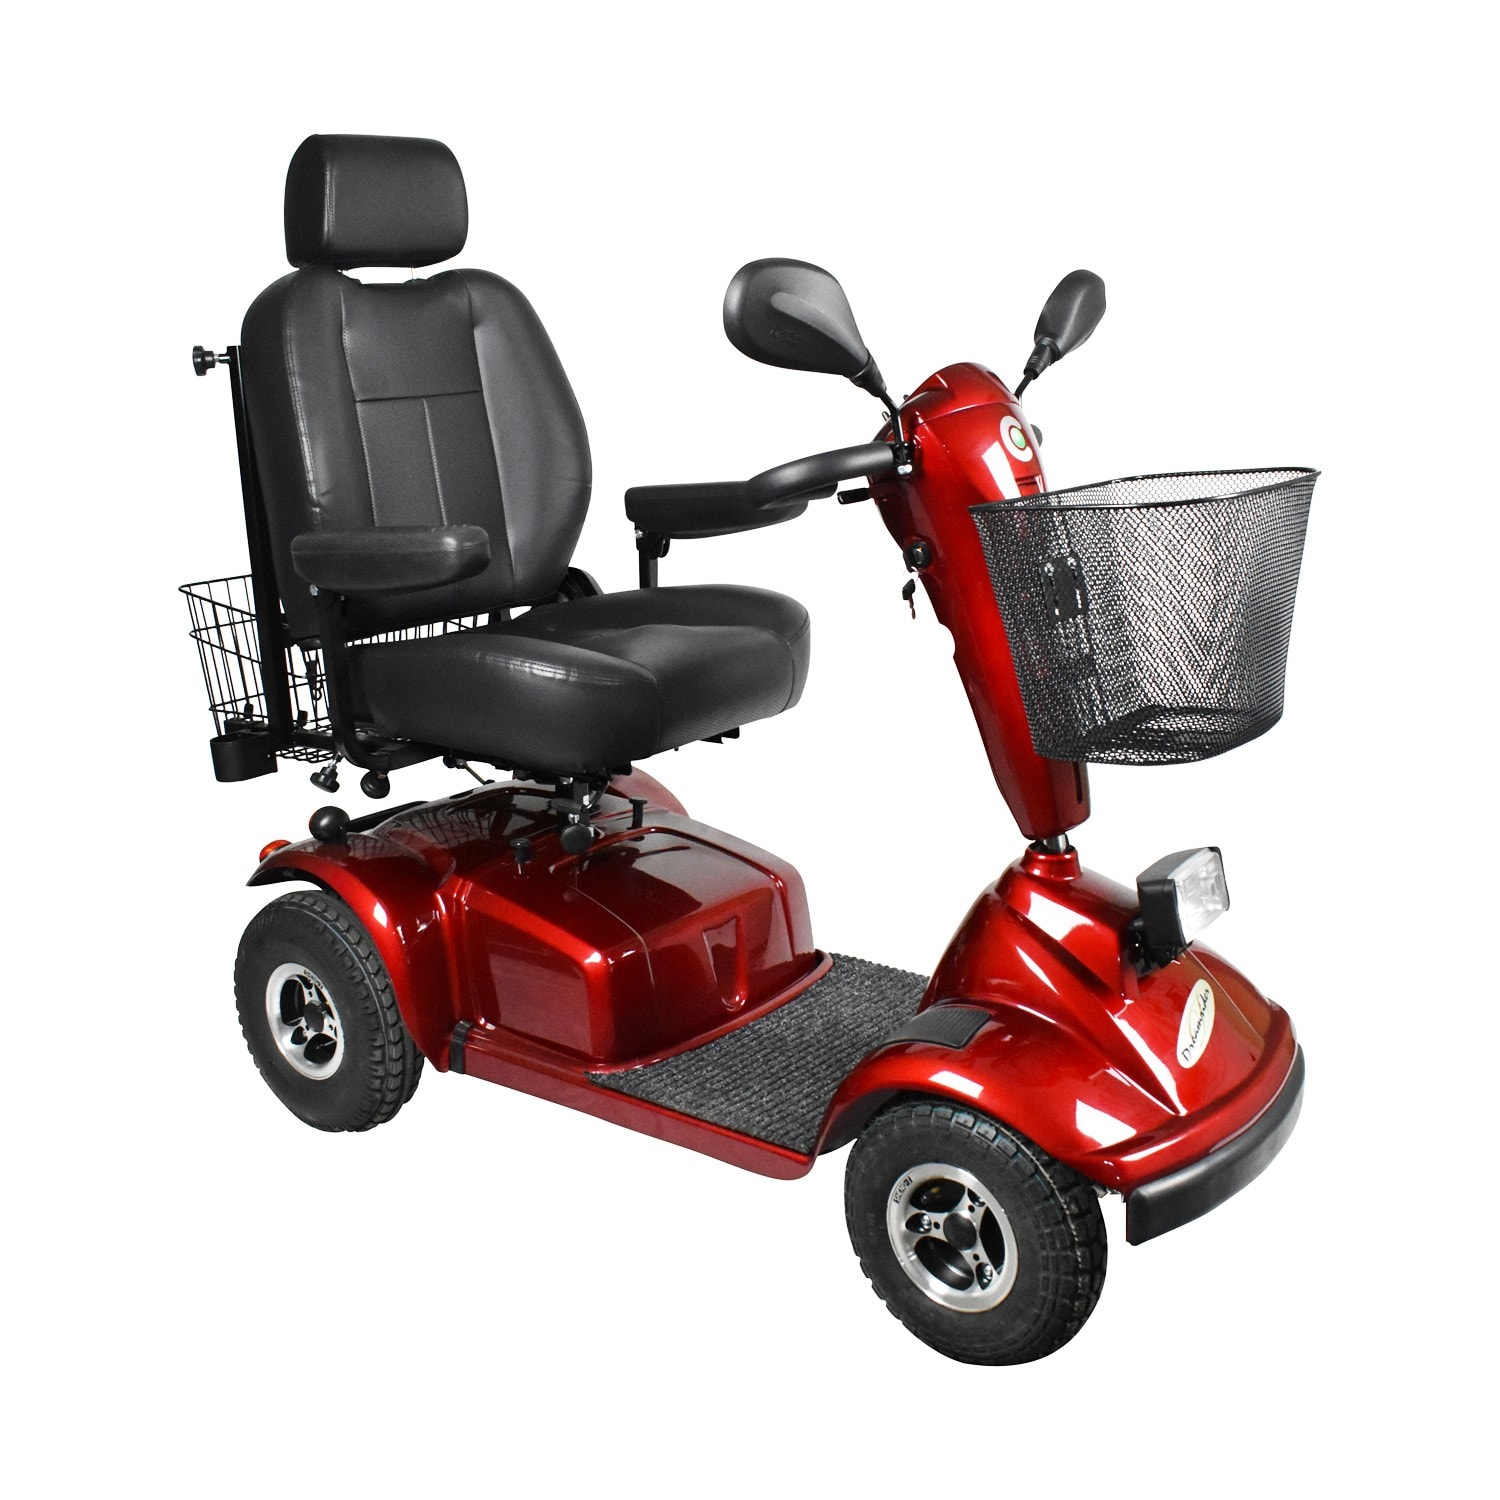 Comfort Dreamrider Mobility Scooter Red